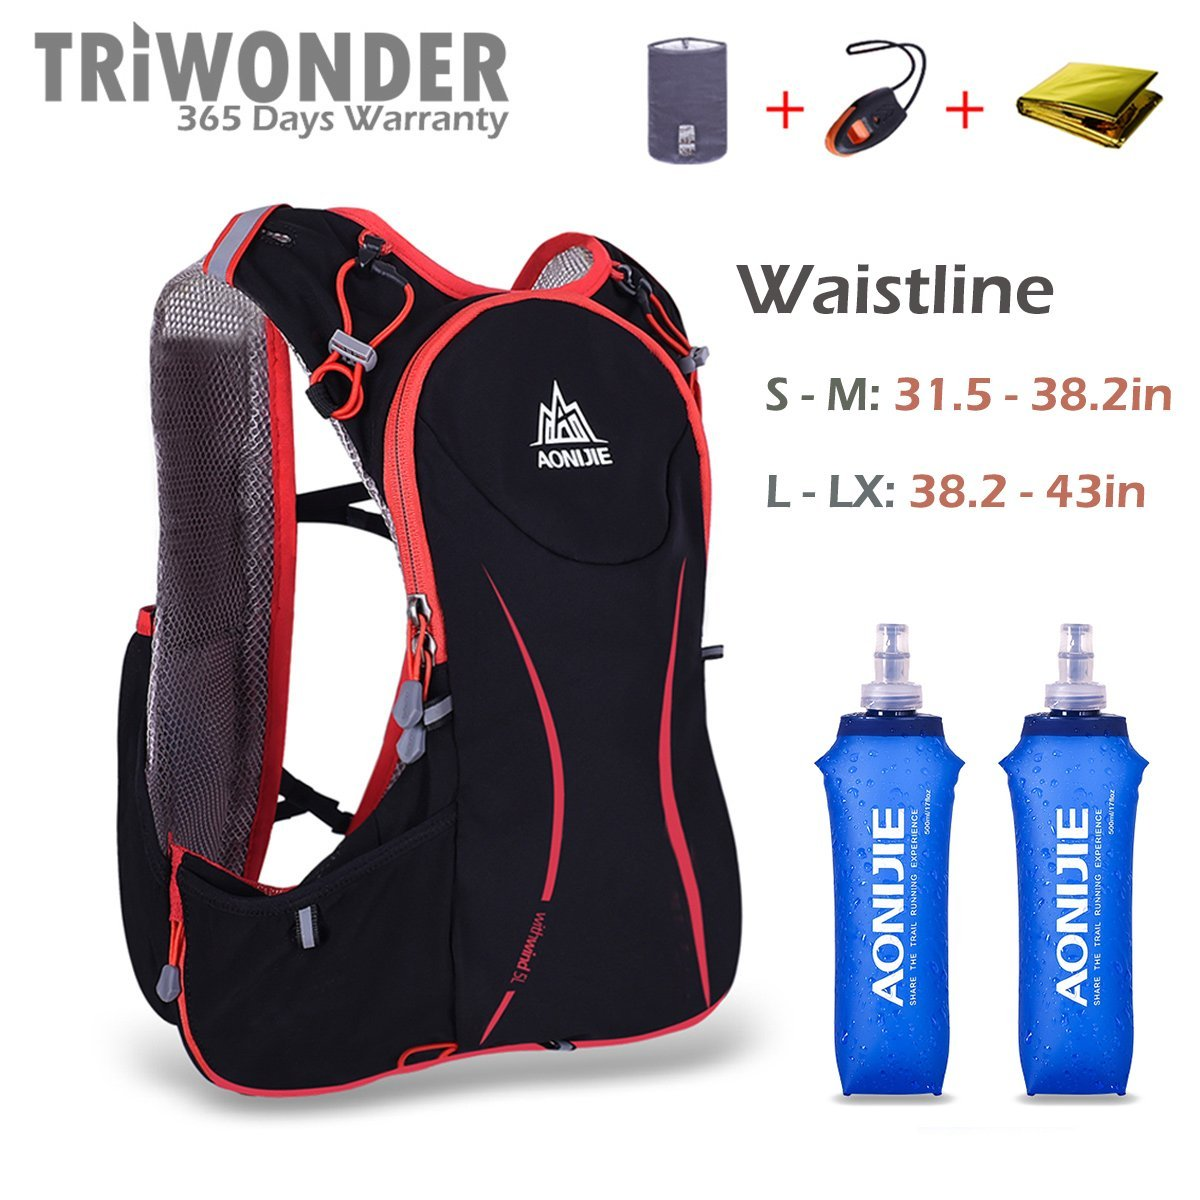 Triwonder 5L Lightweight Deluxe Marathoner Running Race Hydration Vest Hydration Pack Backpack (Black (L-XL) - with 2 Soft Water Bottles)